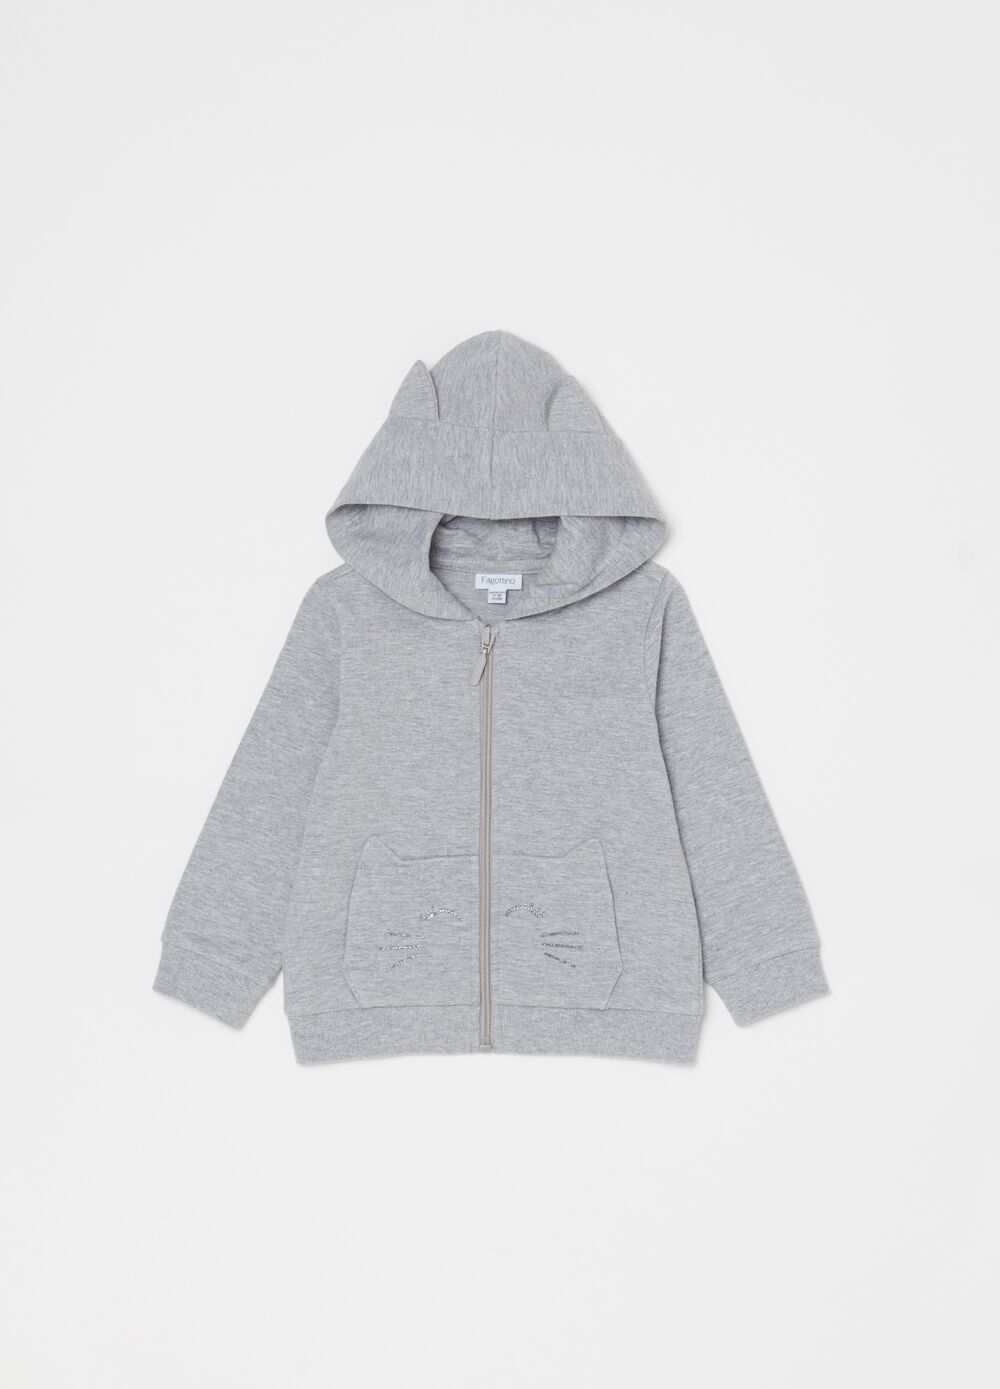 Stretch sweatshirt with hood, glitter and zip